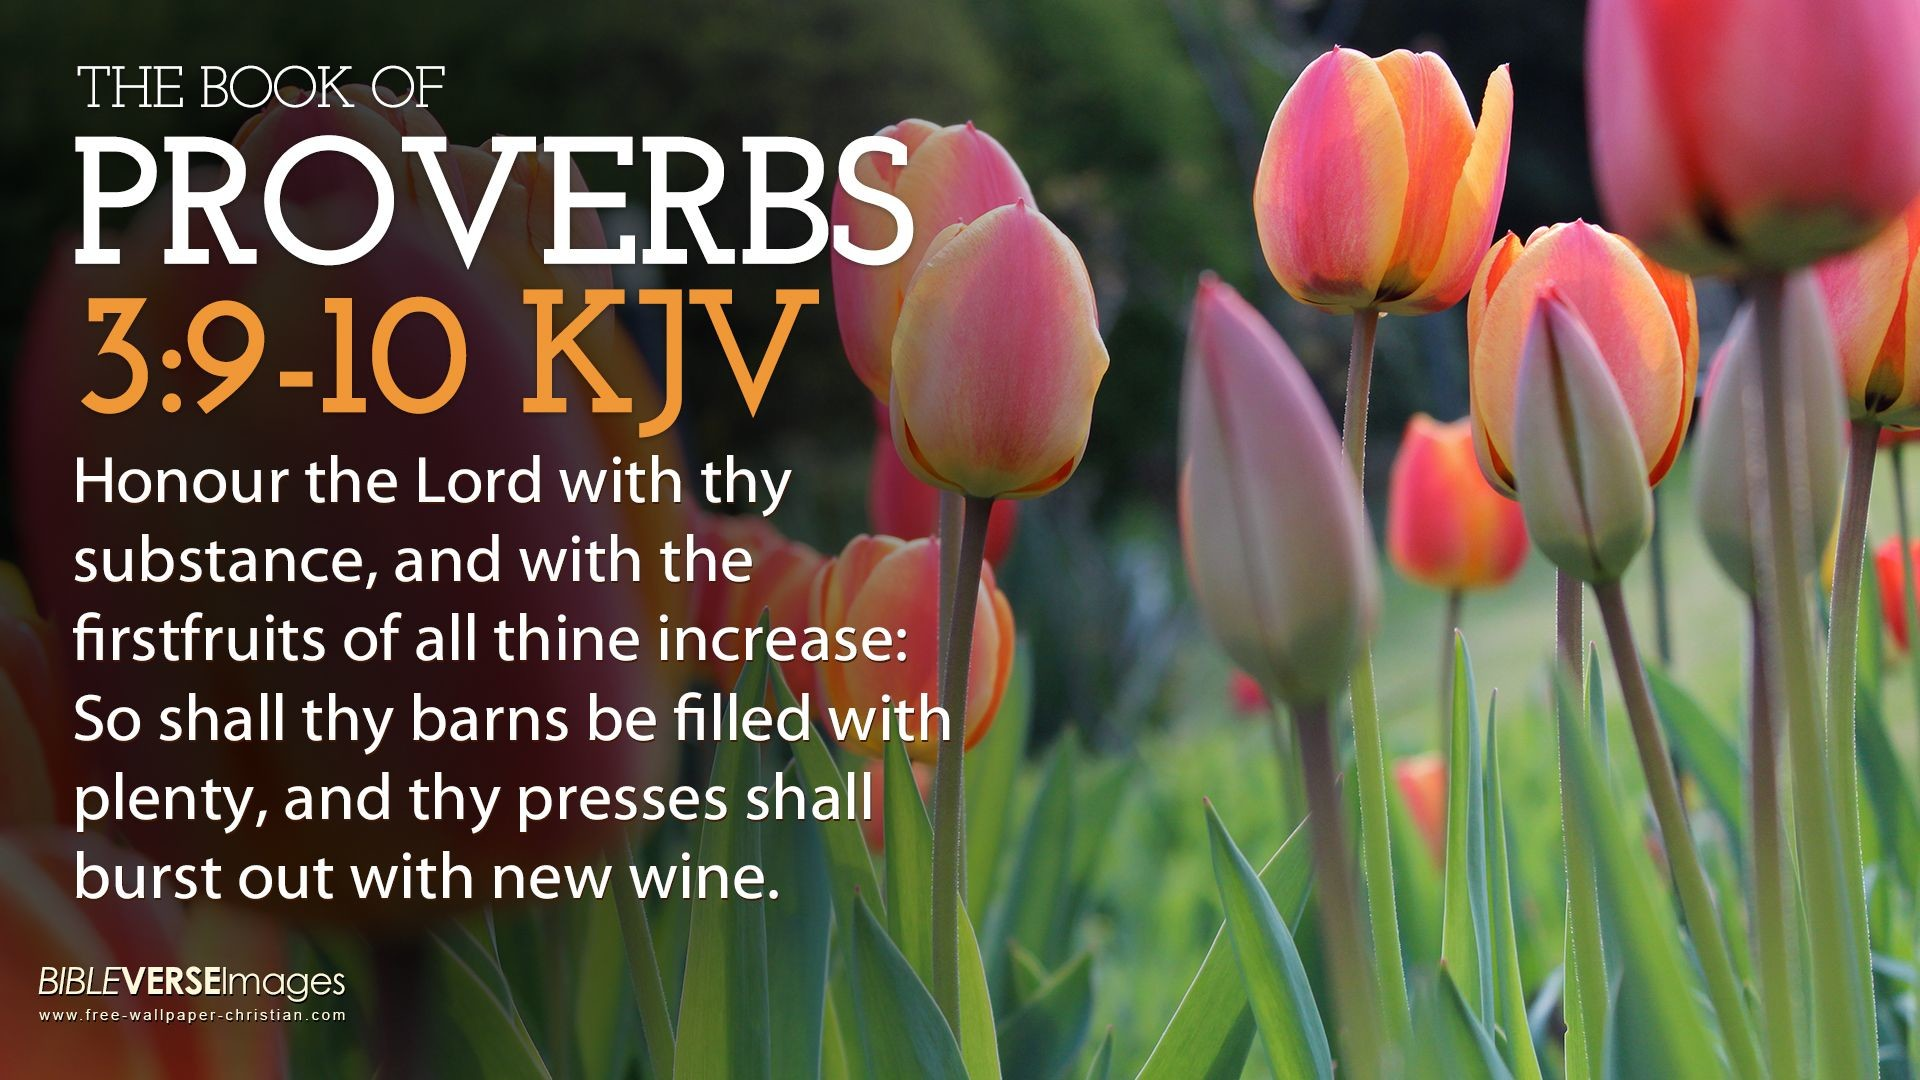 1920x1080 10 King James Version Bible Verse Wallpaper Proverbs 3: